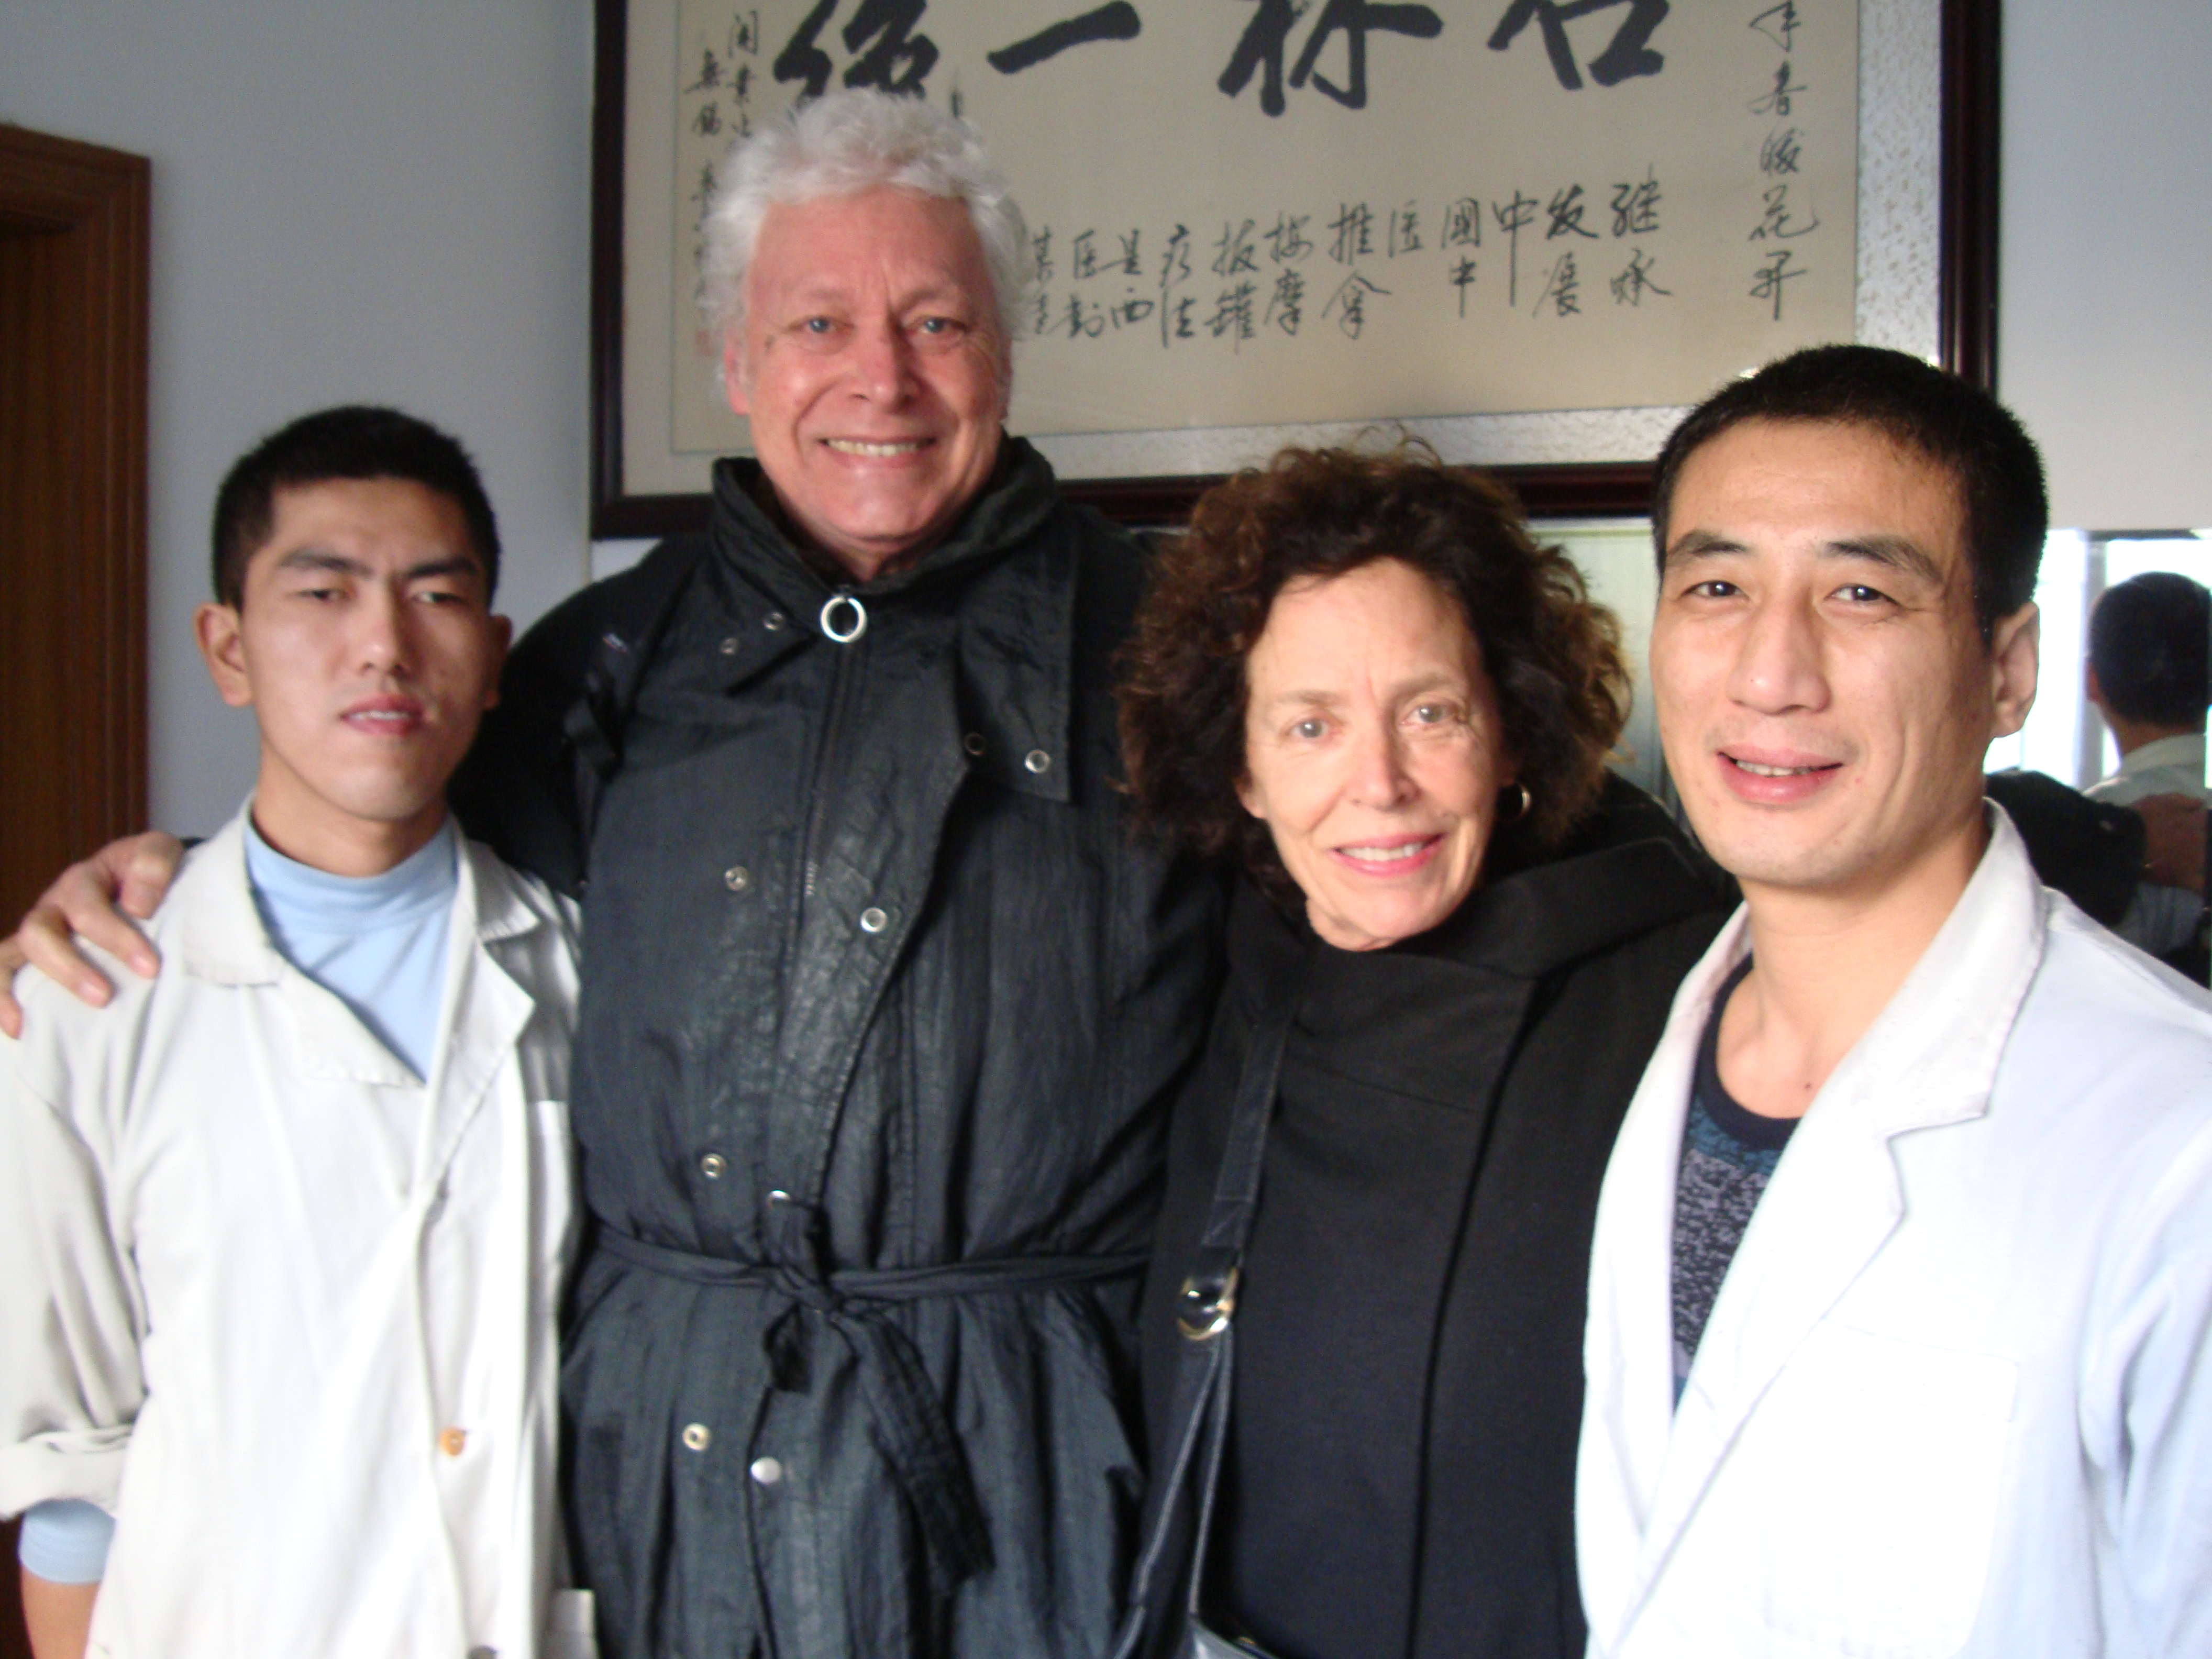 Picture:  My masseur, Xiao Shi, Da Dawei, Lise and her masseur.